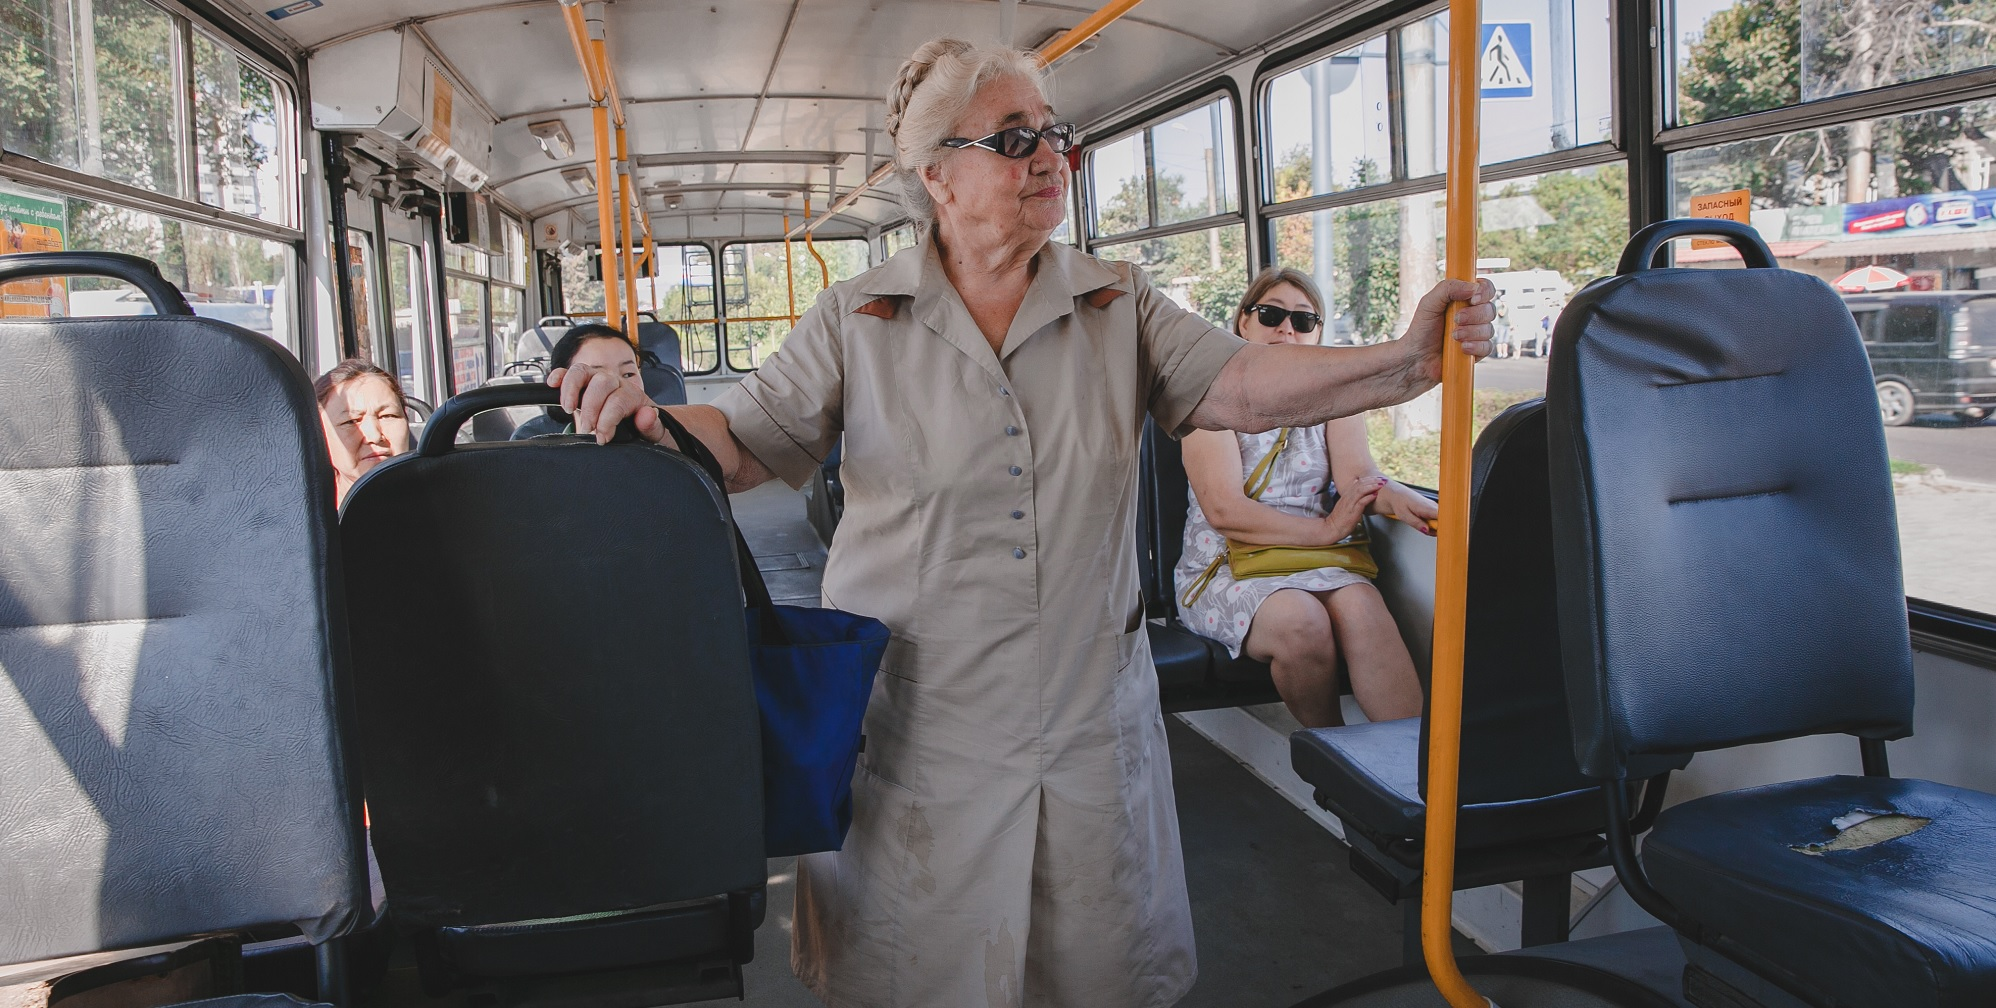 Vera finds that bus drivers sometimes refuse to stop because older people only pay half price (c) Malik Alymkulov/HelpAge International